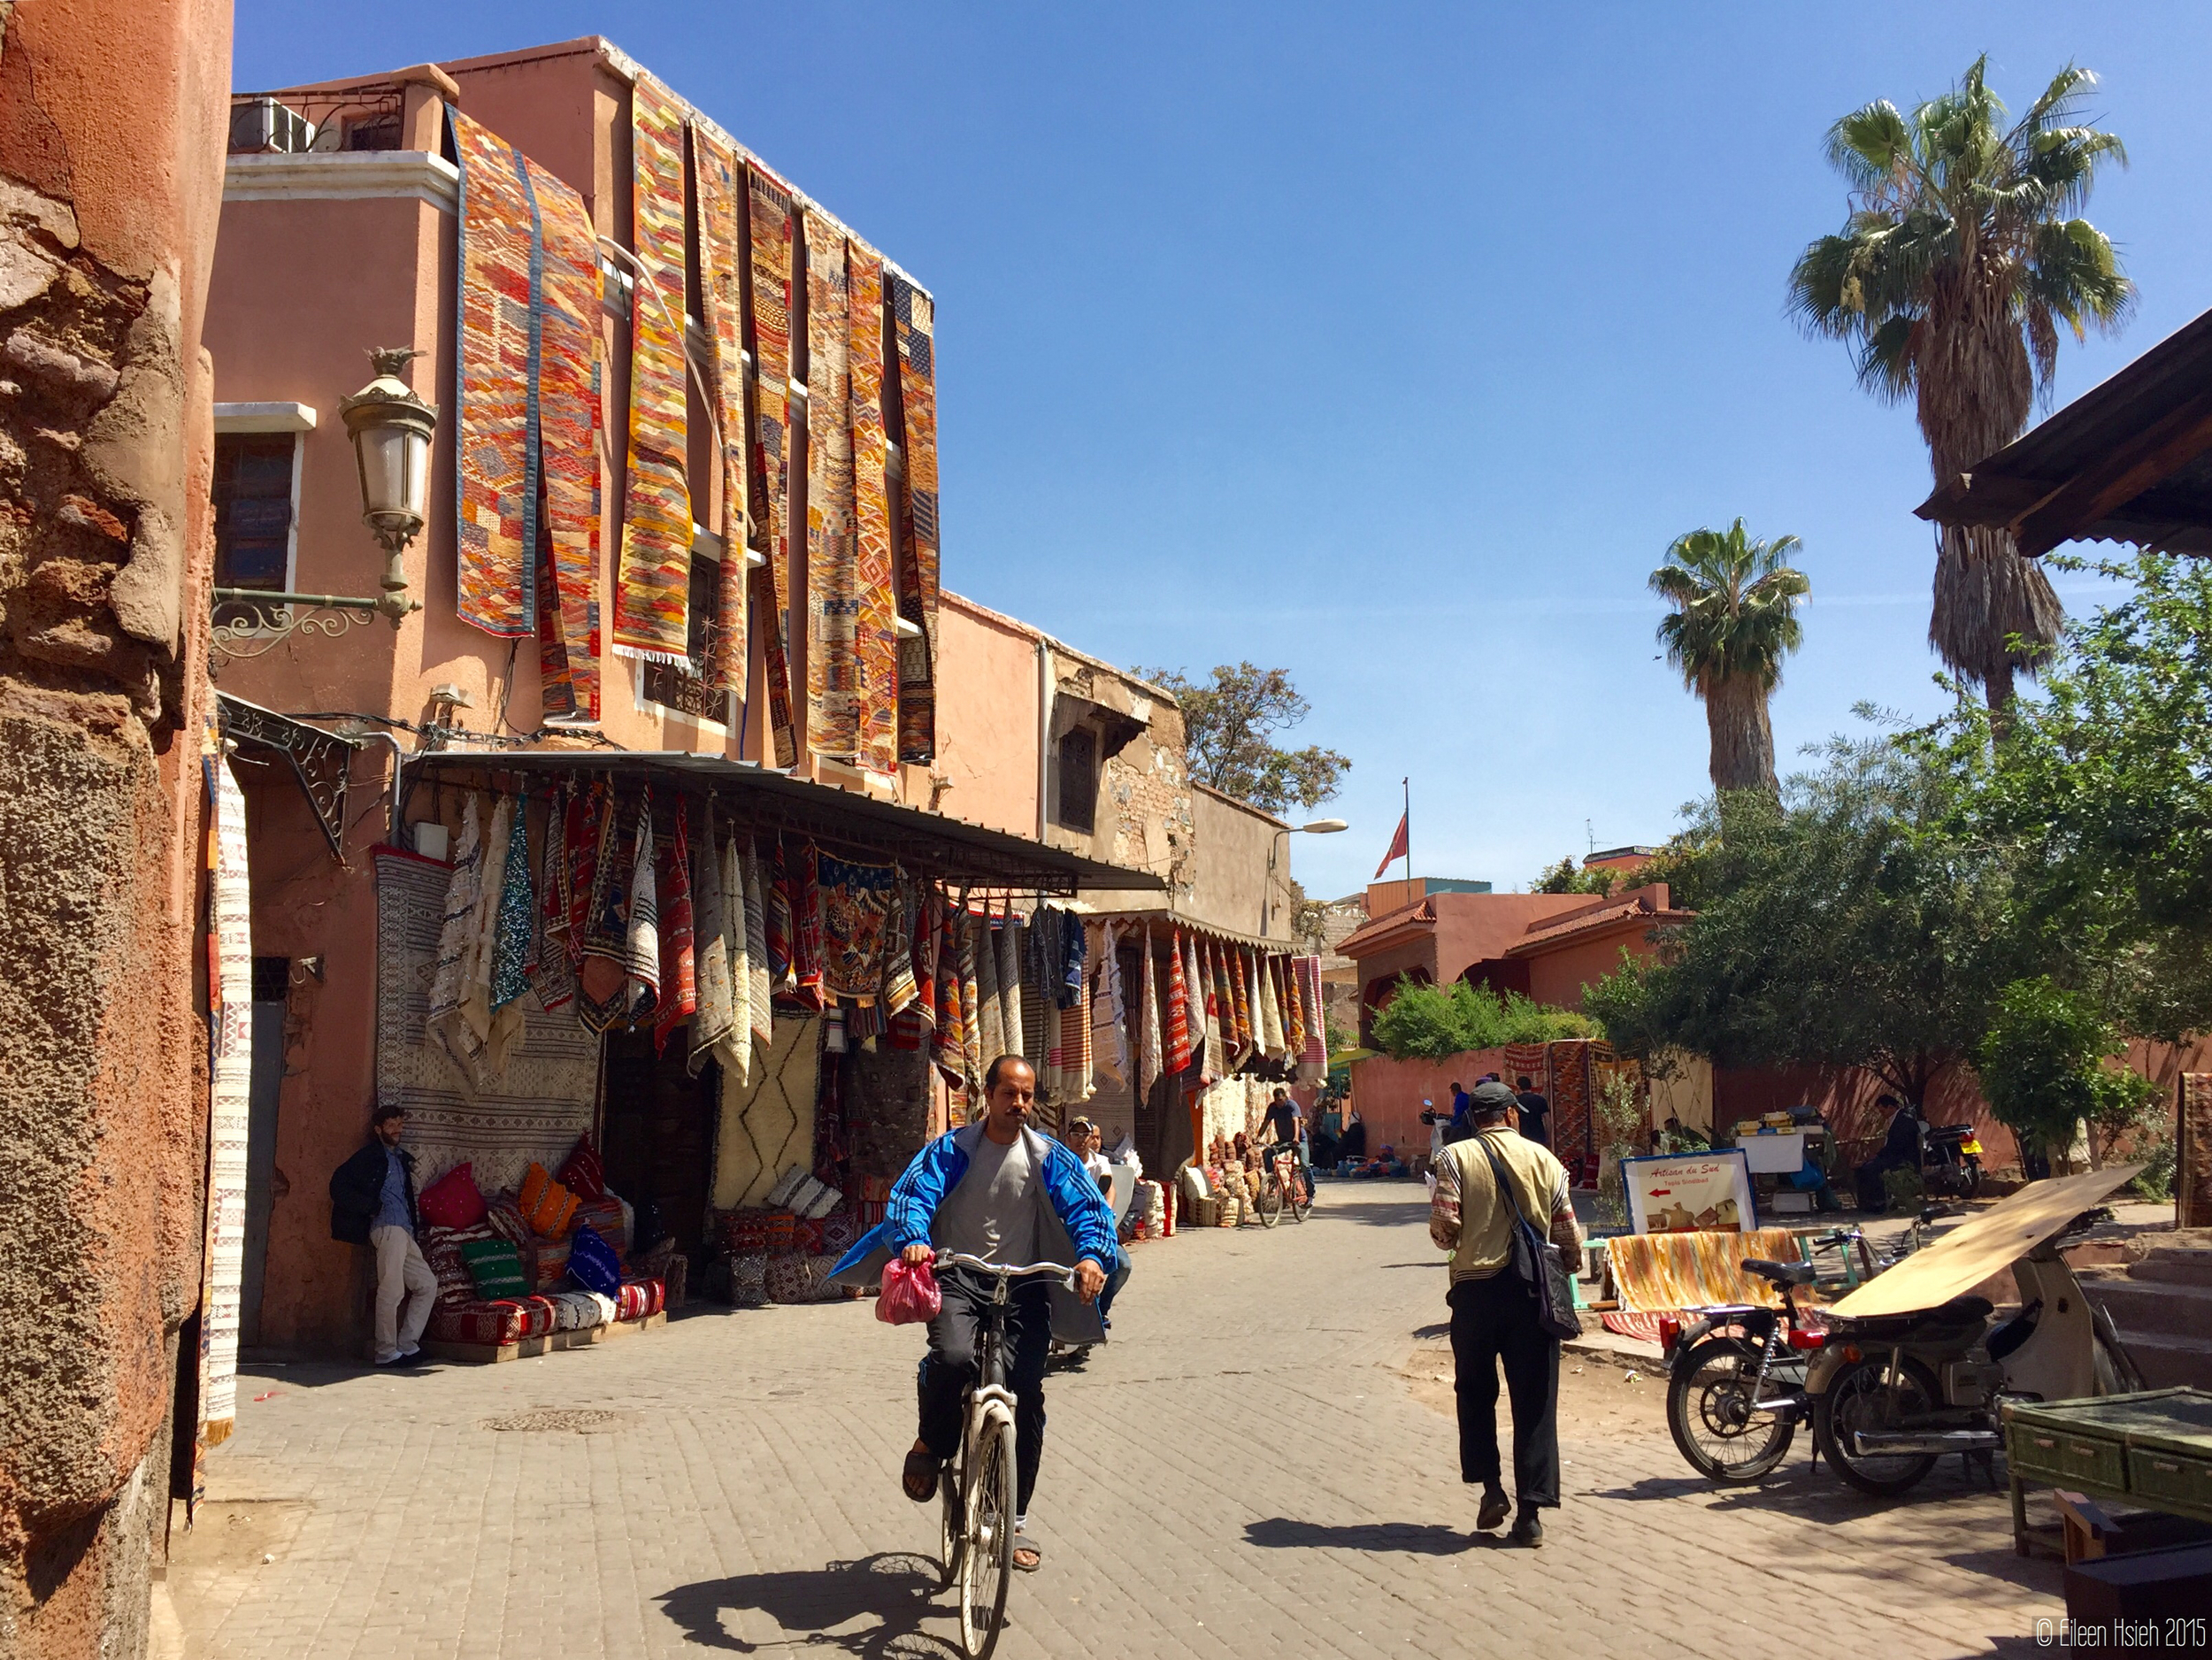 """Marrakech is often referred to as the """"Rose City"""" or the """"Red City"""" for its salmon pink buildings and the nearly thousand-year-old ramparts. 馬拉喀什老區處處可見鮭魚色的建築與  近千年歷史的  城牆,為它贏得了「玫瑰城」或是「紅城」的美名。"""